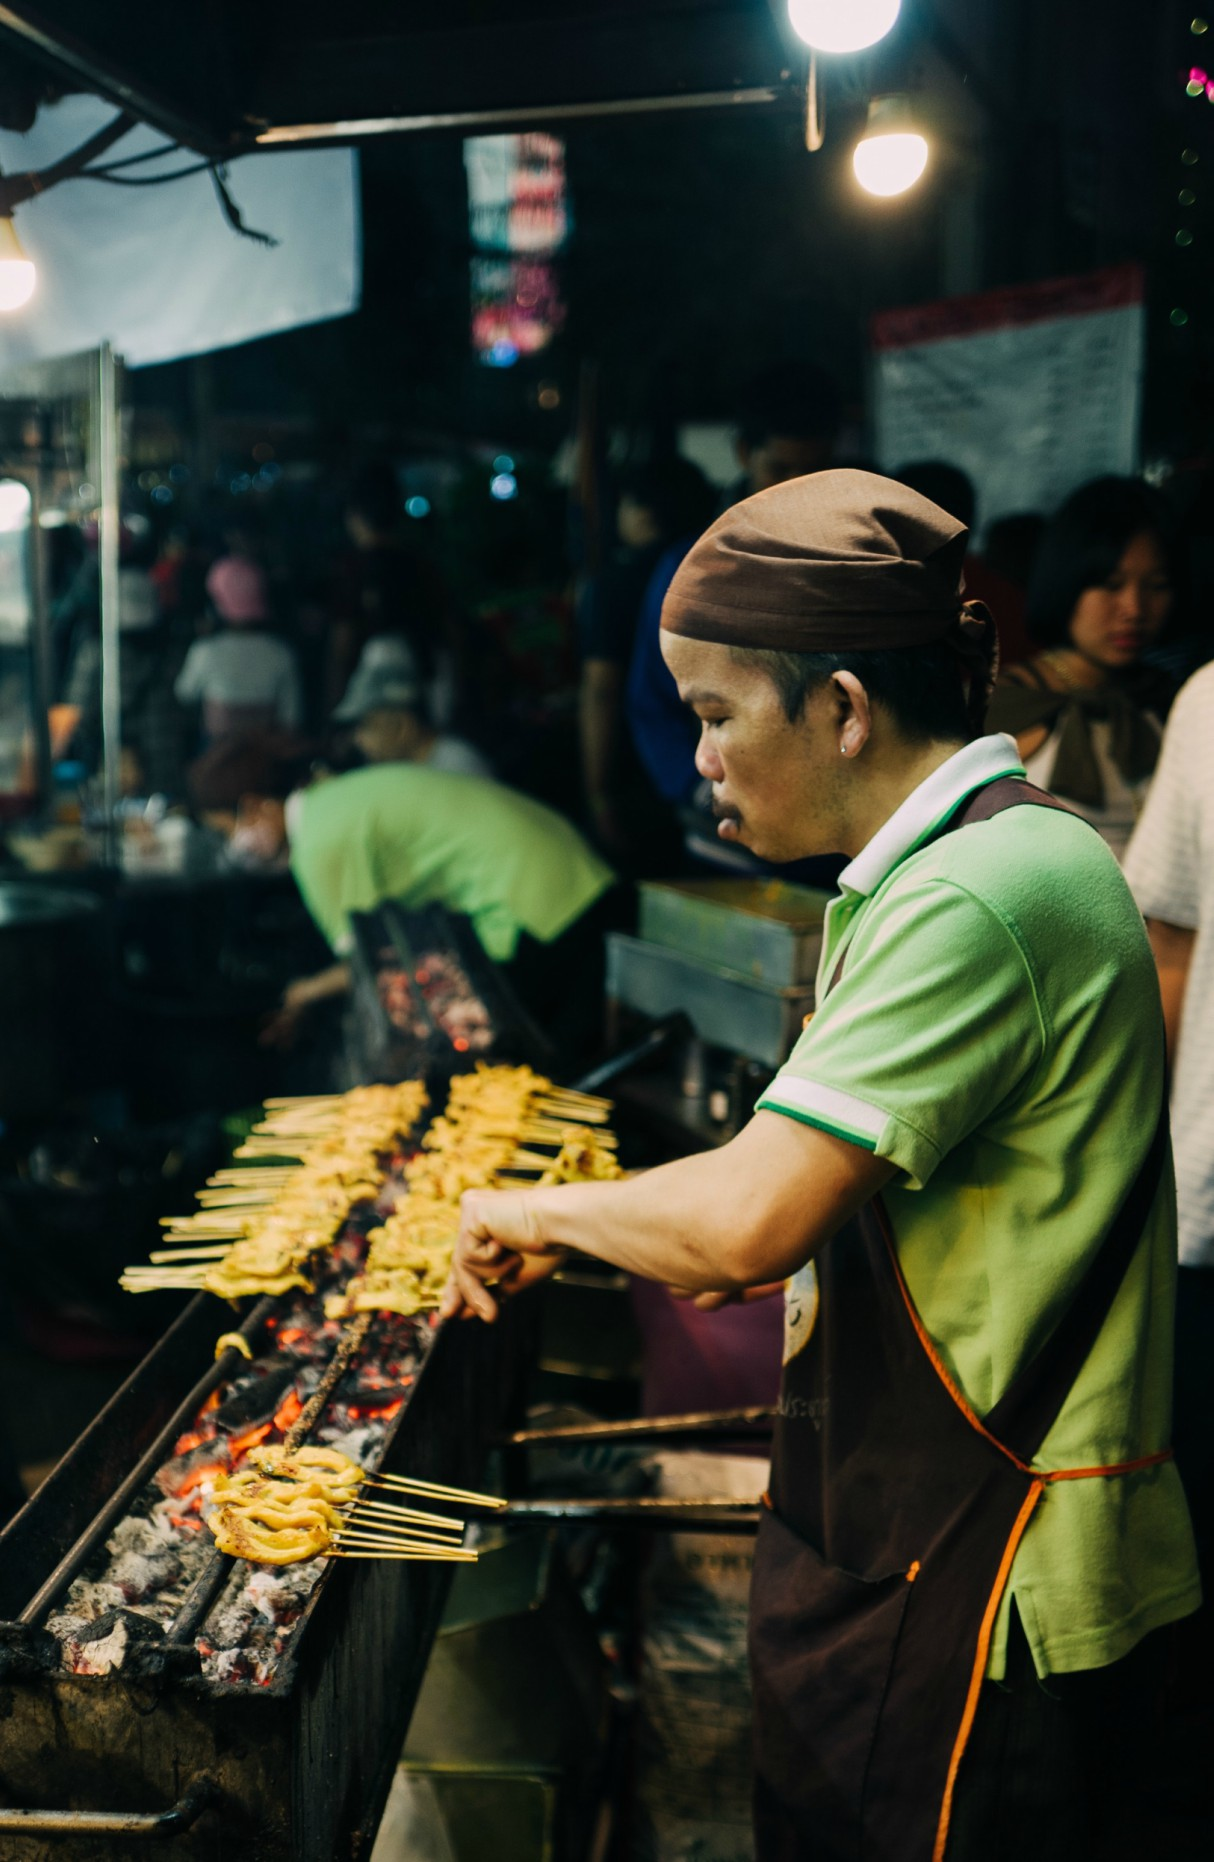 street-food-best-cities-world-bangkok-thailand